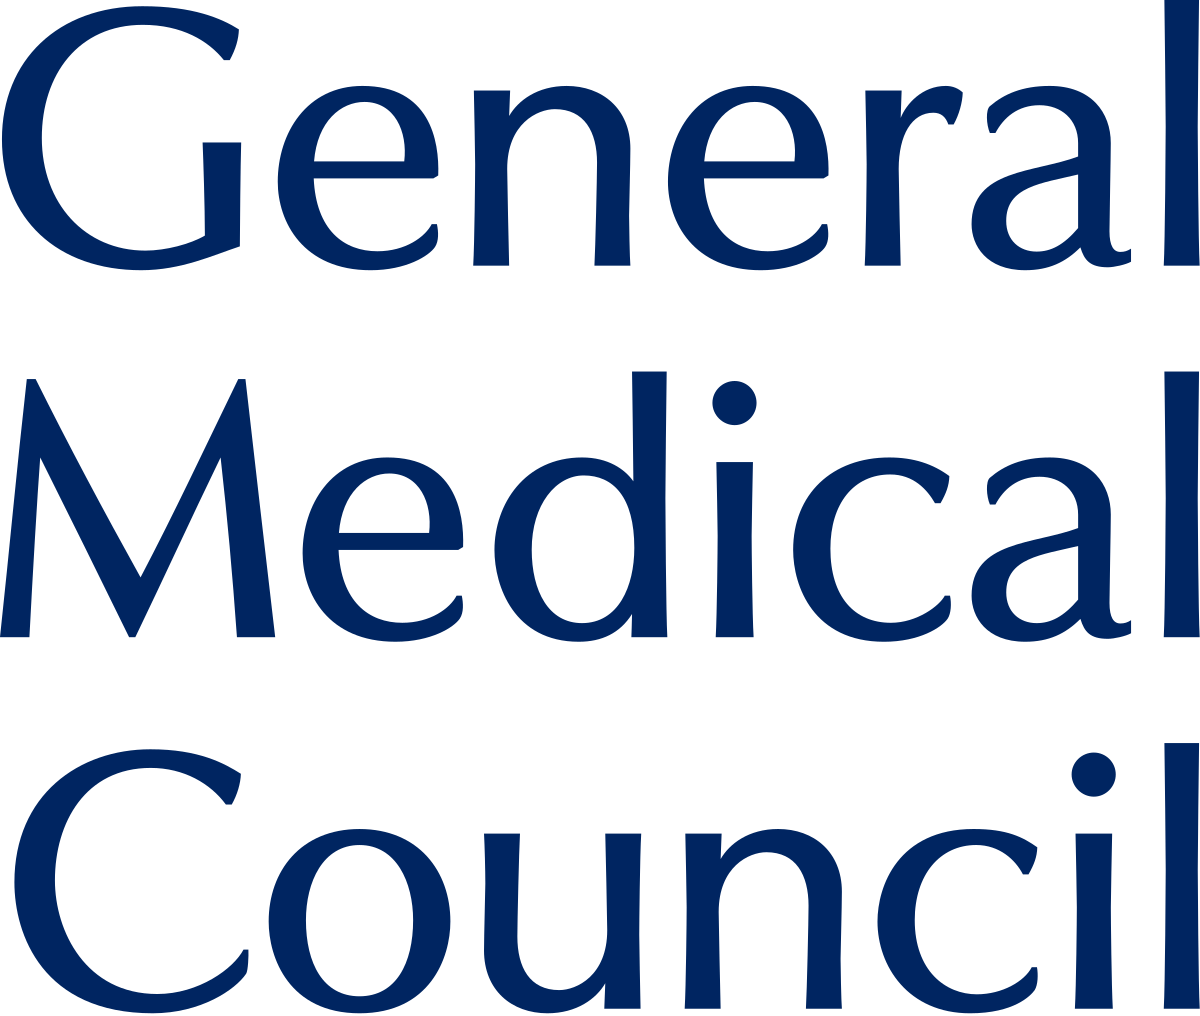 Winner announced for Excellent Medical Education Joint ASME/GMC Awards 2019 CPD category